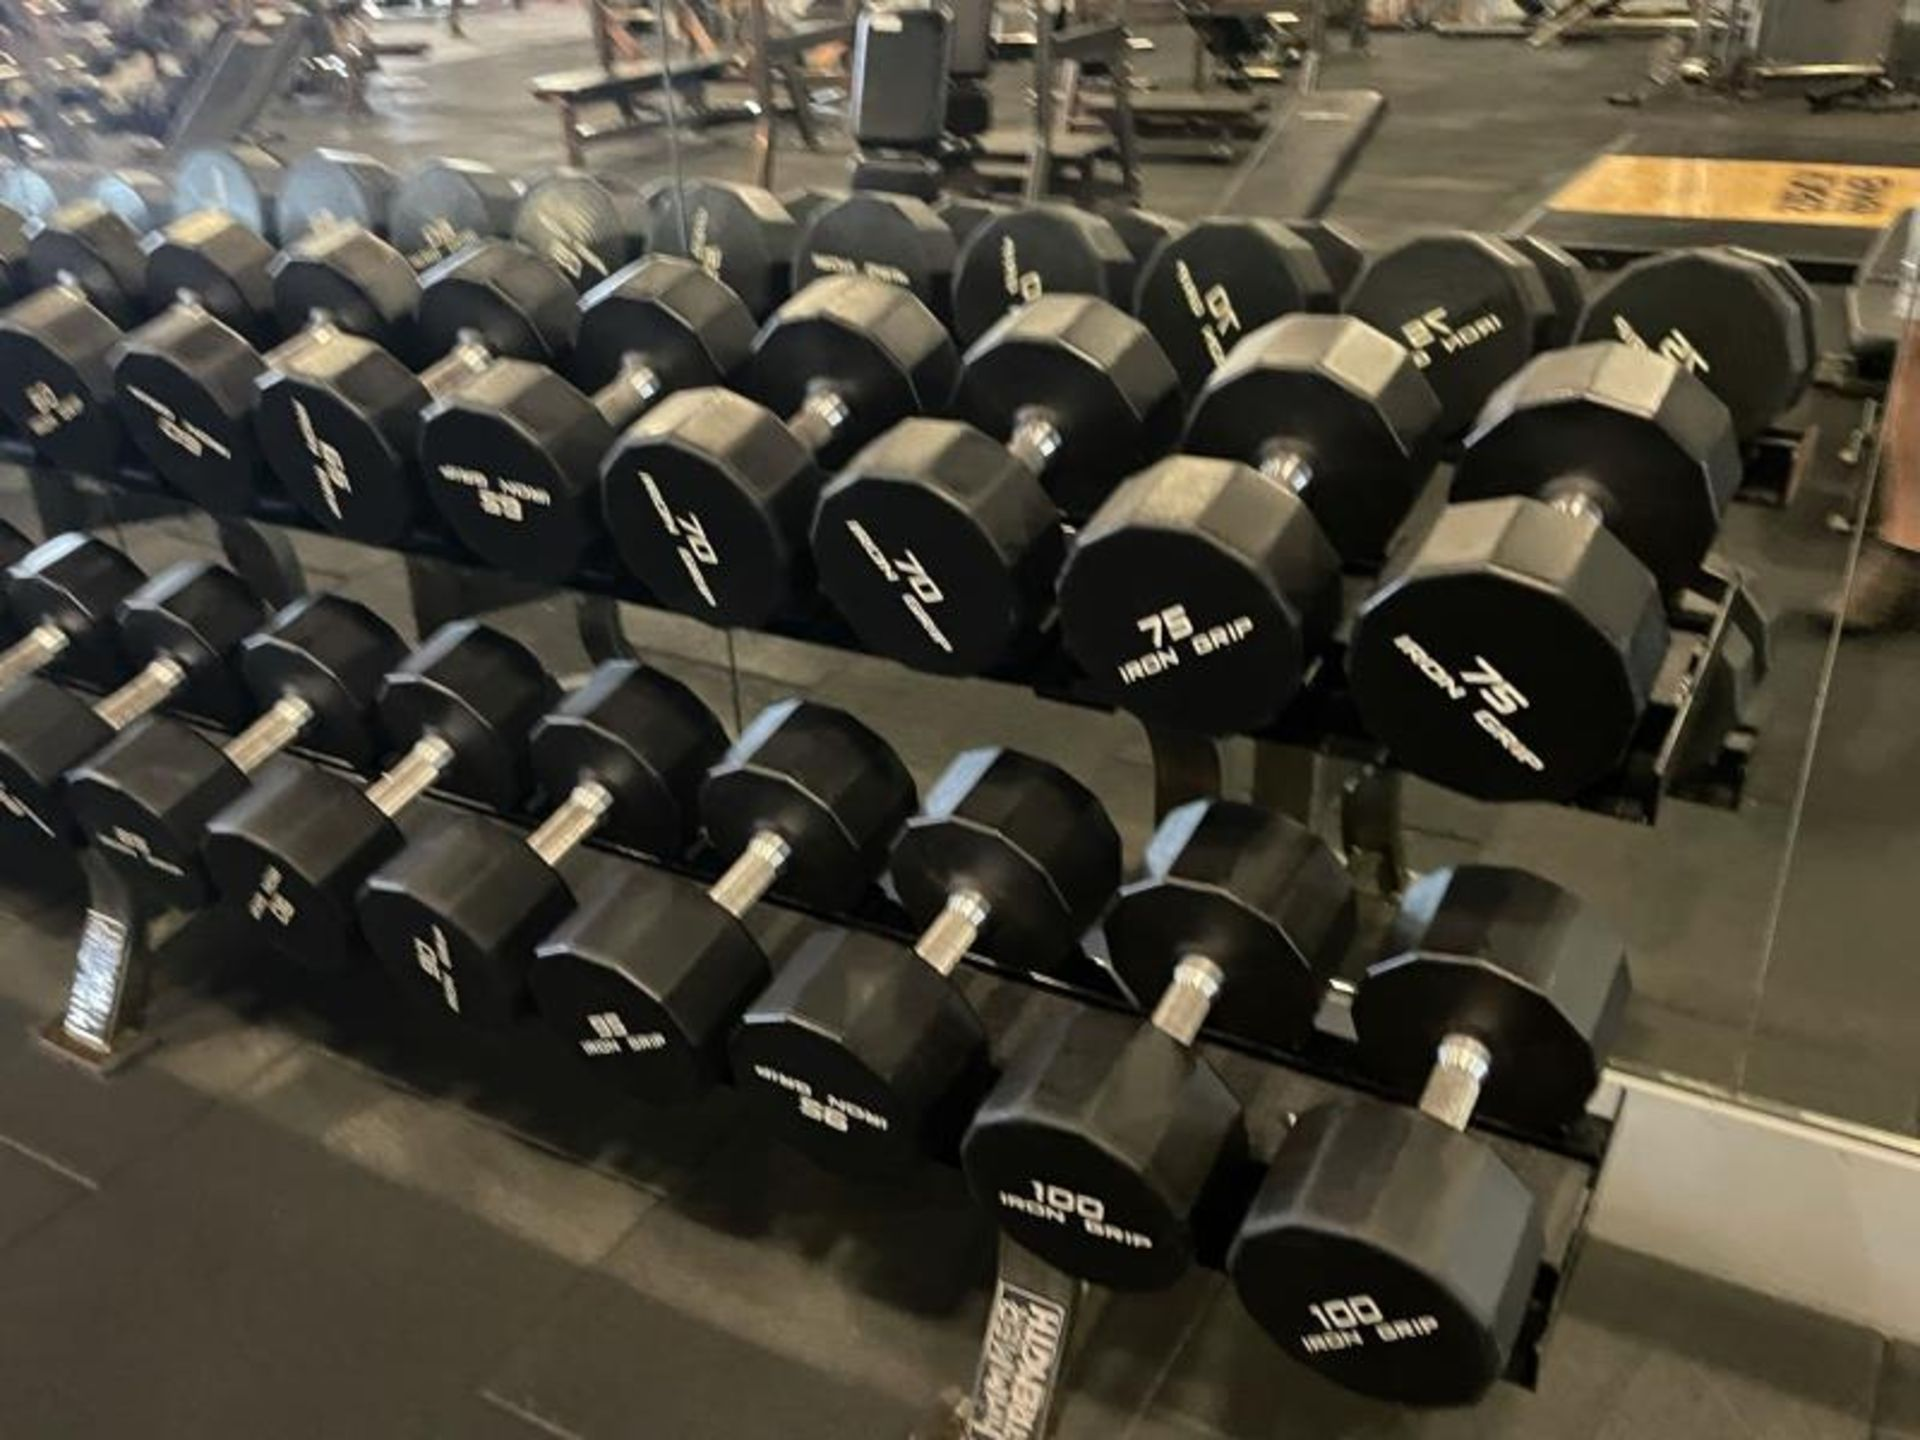 Iron Grip Dumbbell 5-100# with Hammer Strength 2 Tier Racks - Image 7 of 9